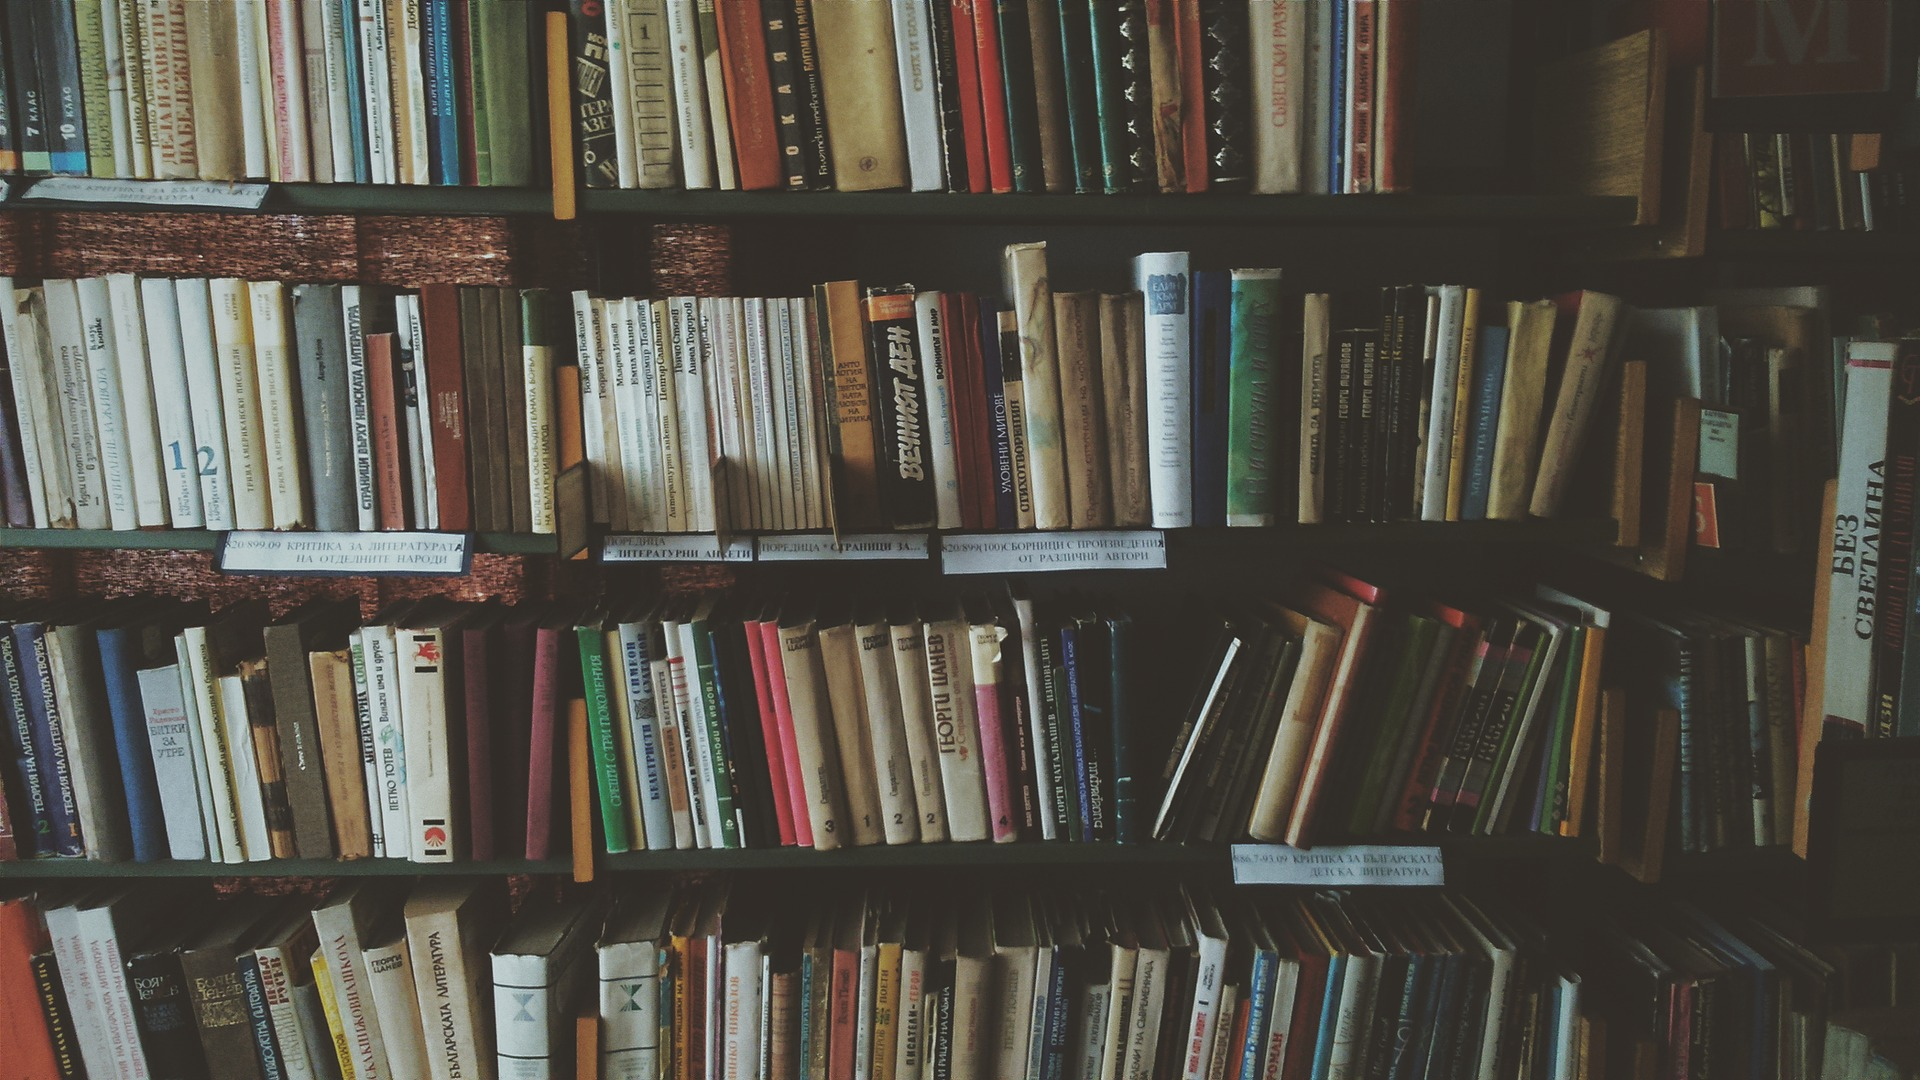 10 Books to Promote & Prepare for Revival